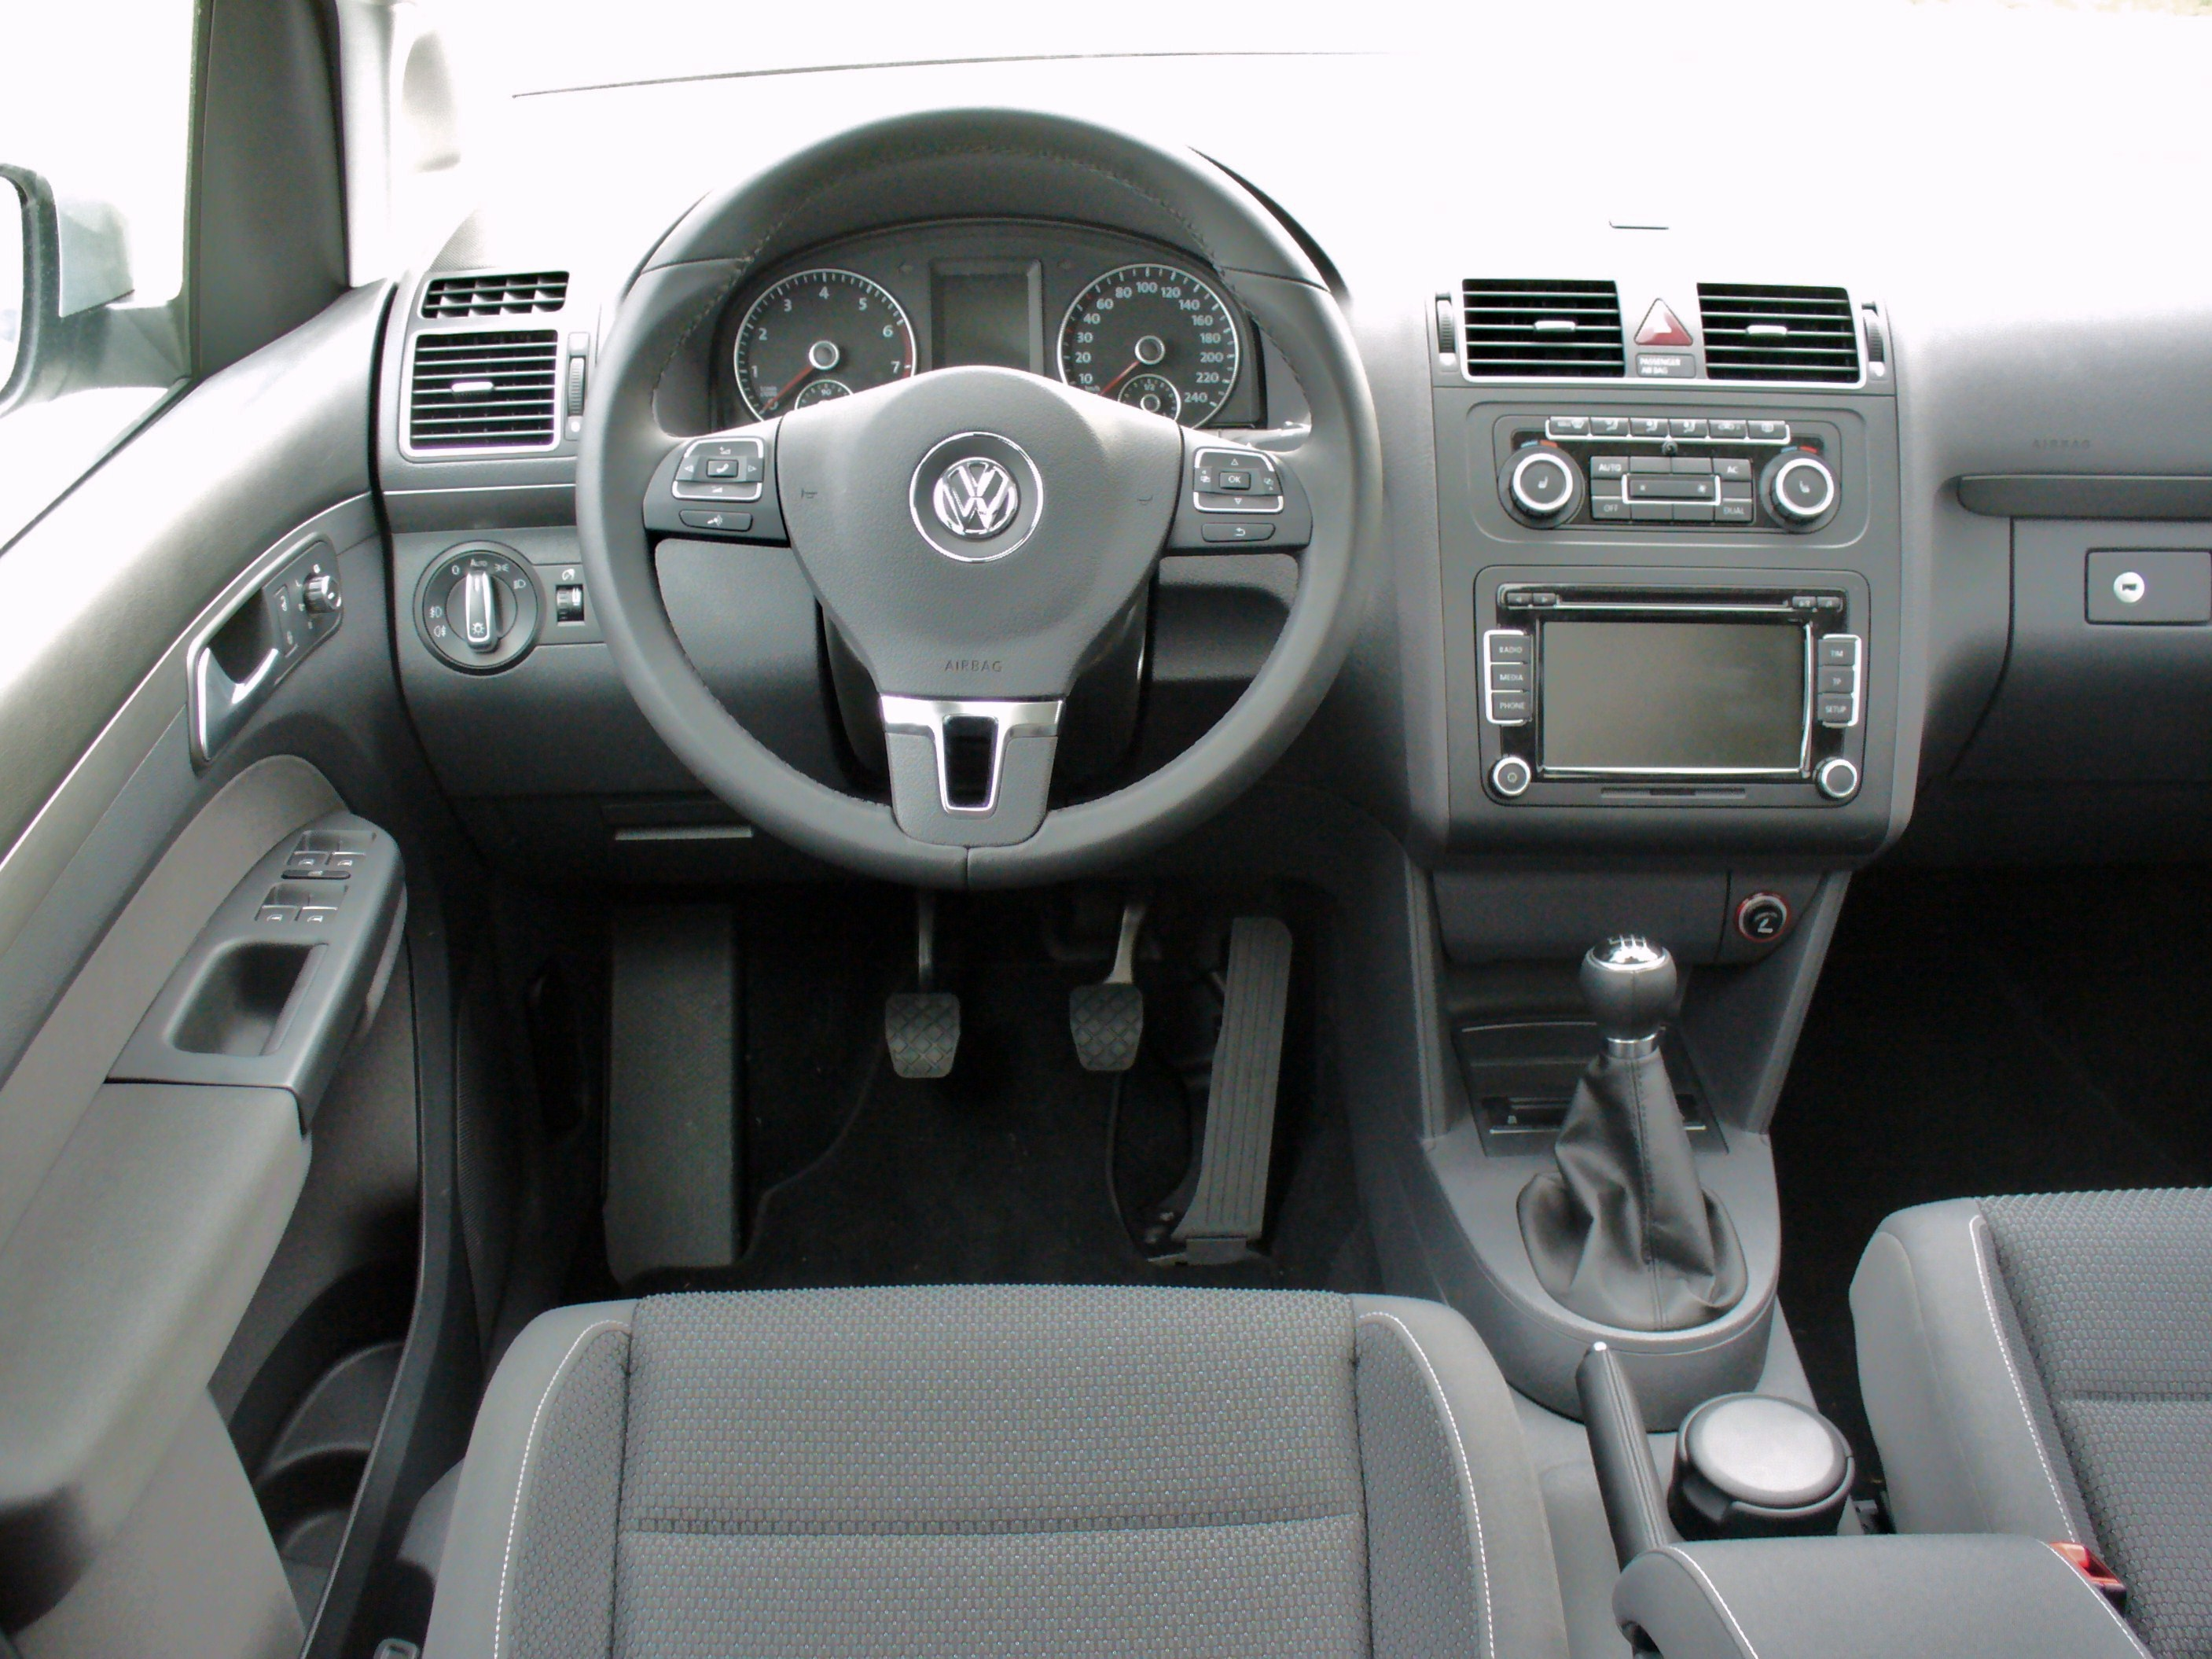 file vw touran facelift ii 1 4 tsi comfortline silverleaf interieur jpg wikimedia commons. Black Bedroom Furniture Sets. Home Design Ideas